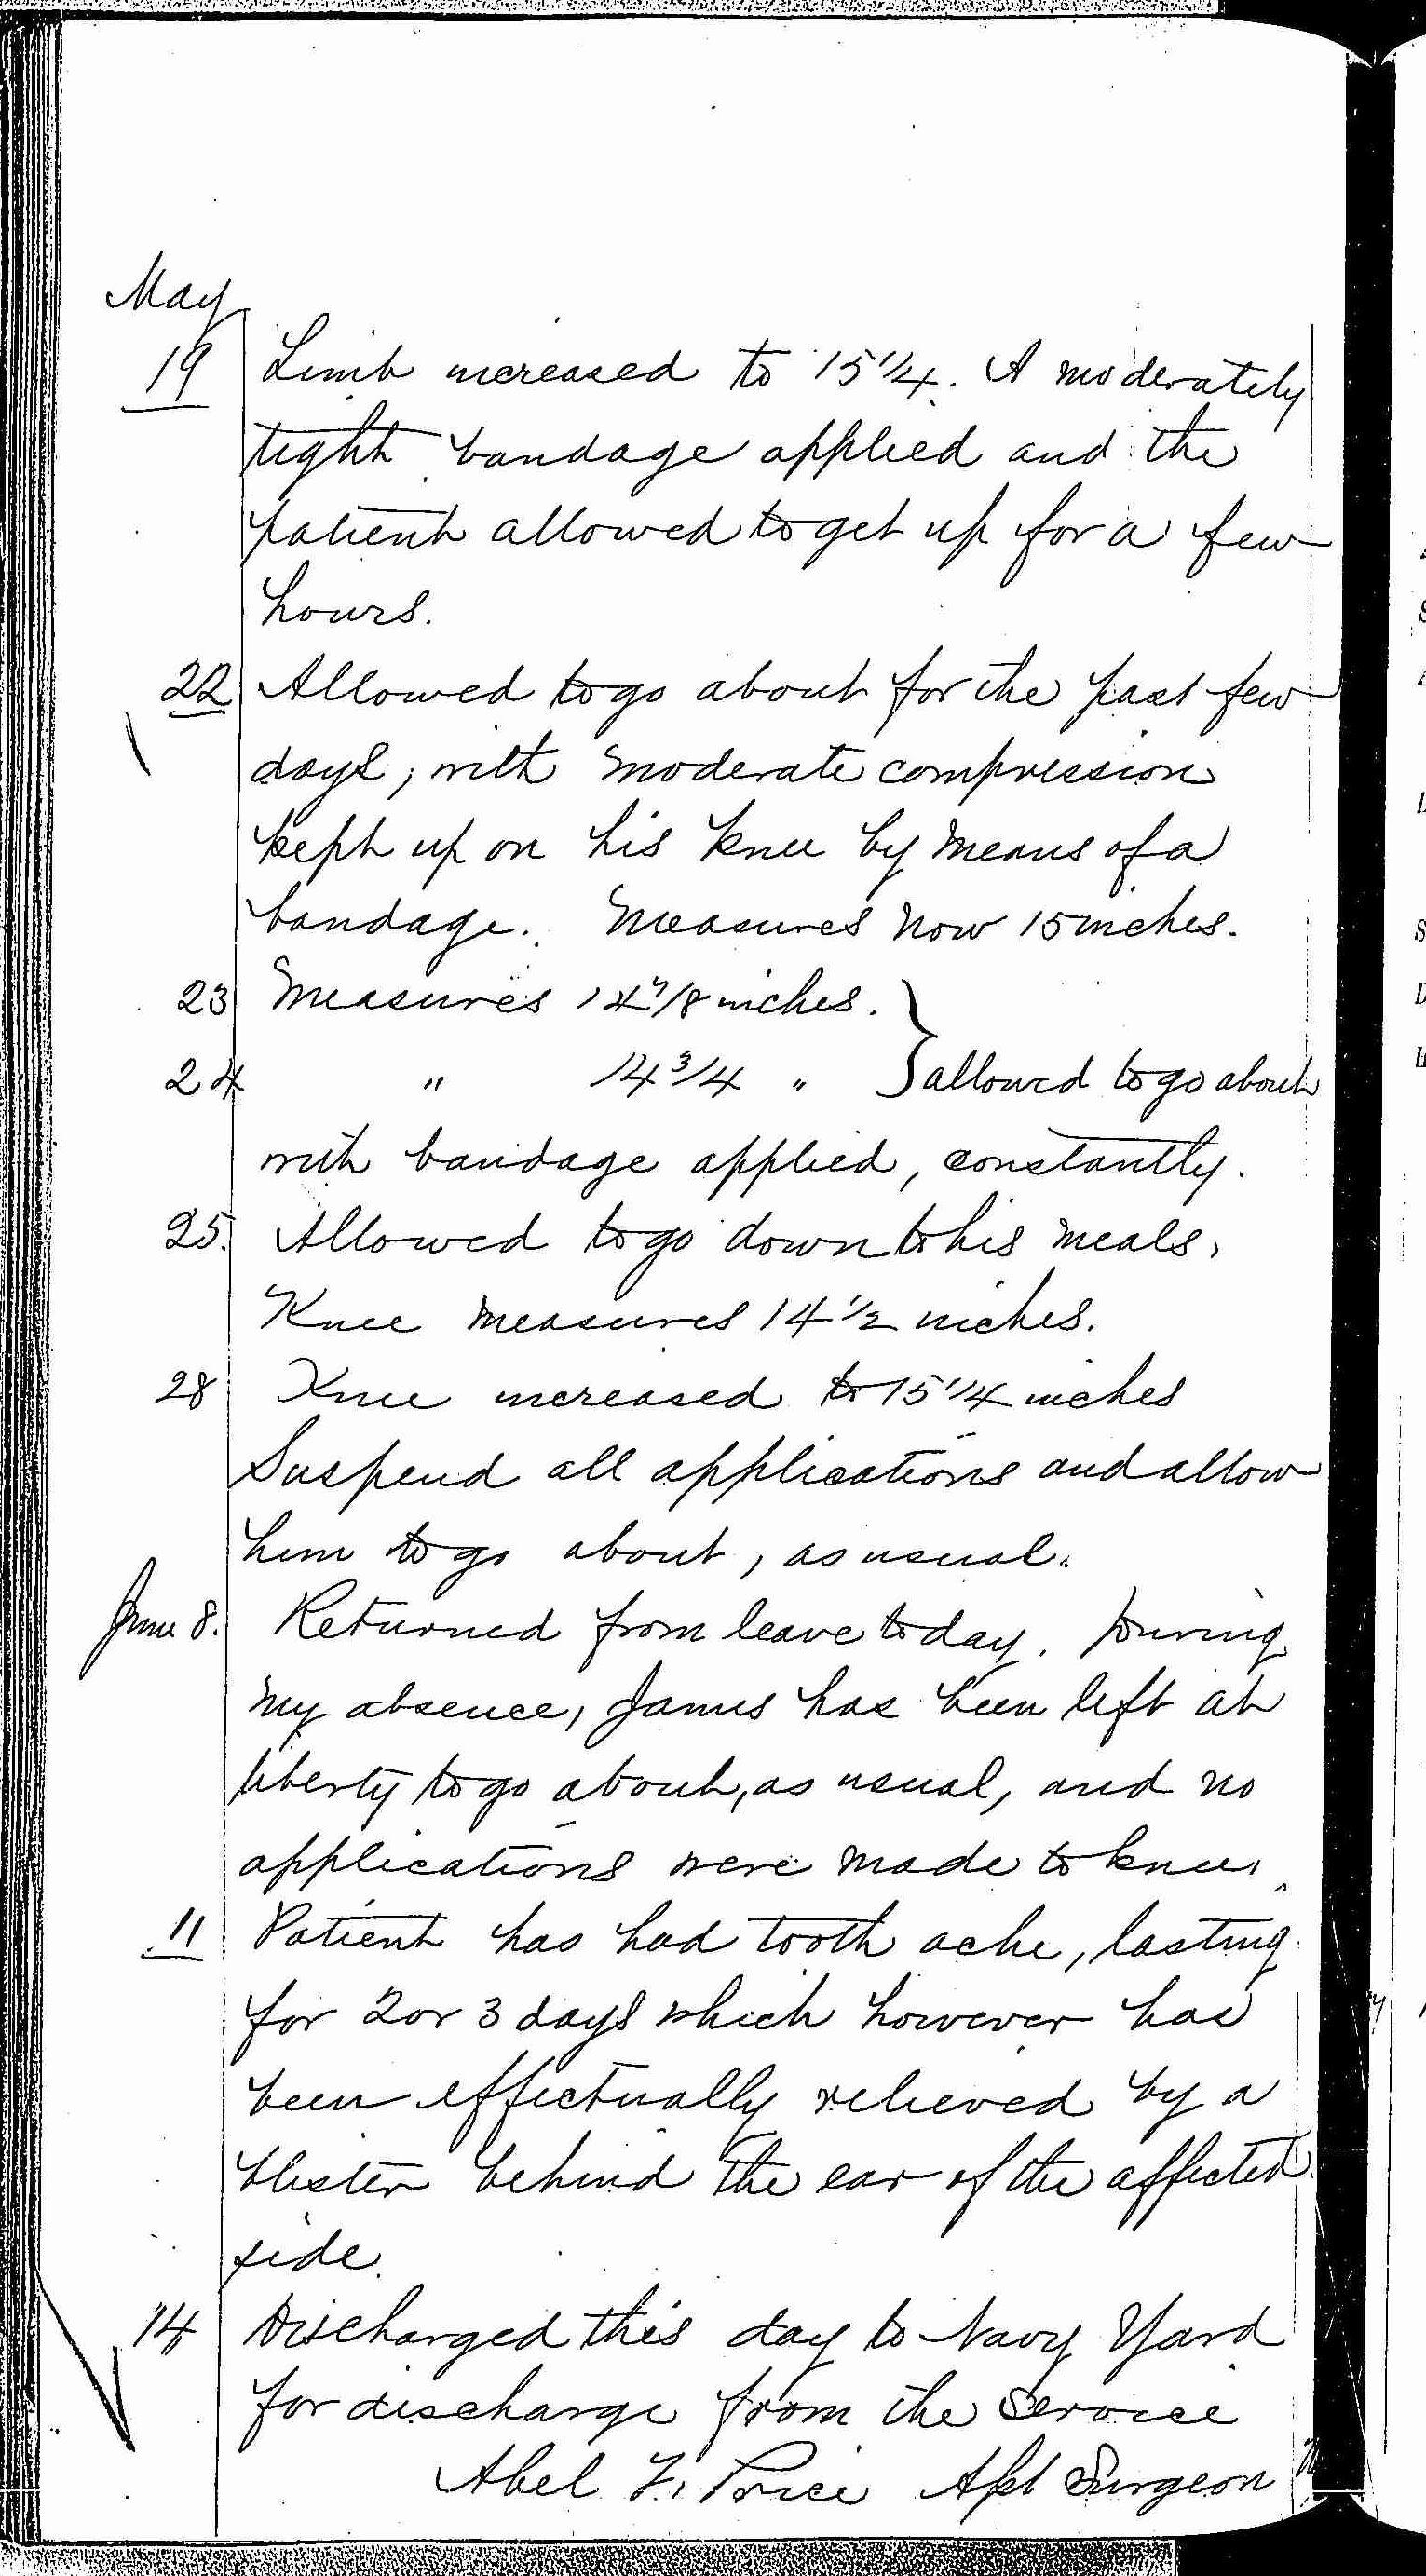 Entry for Henry James (page 8 of 8) in the log Hospital Tickets and Case Papers - Naval Hospital - Washington, D.C. - 1868-69